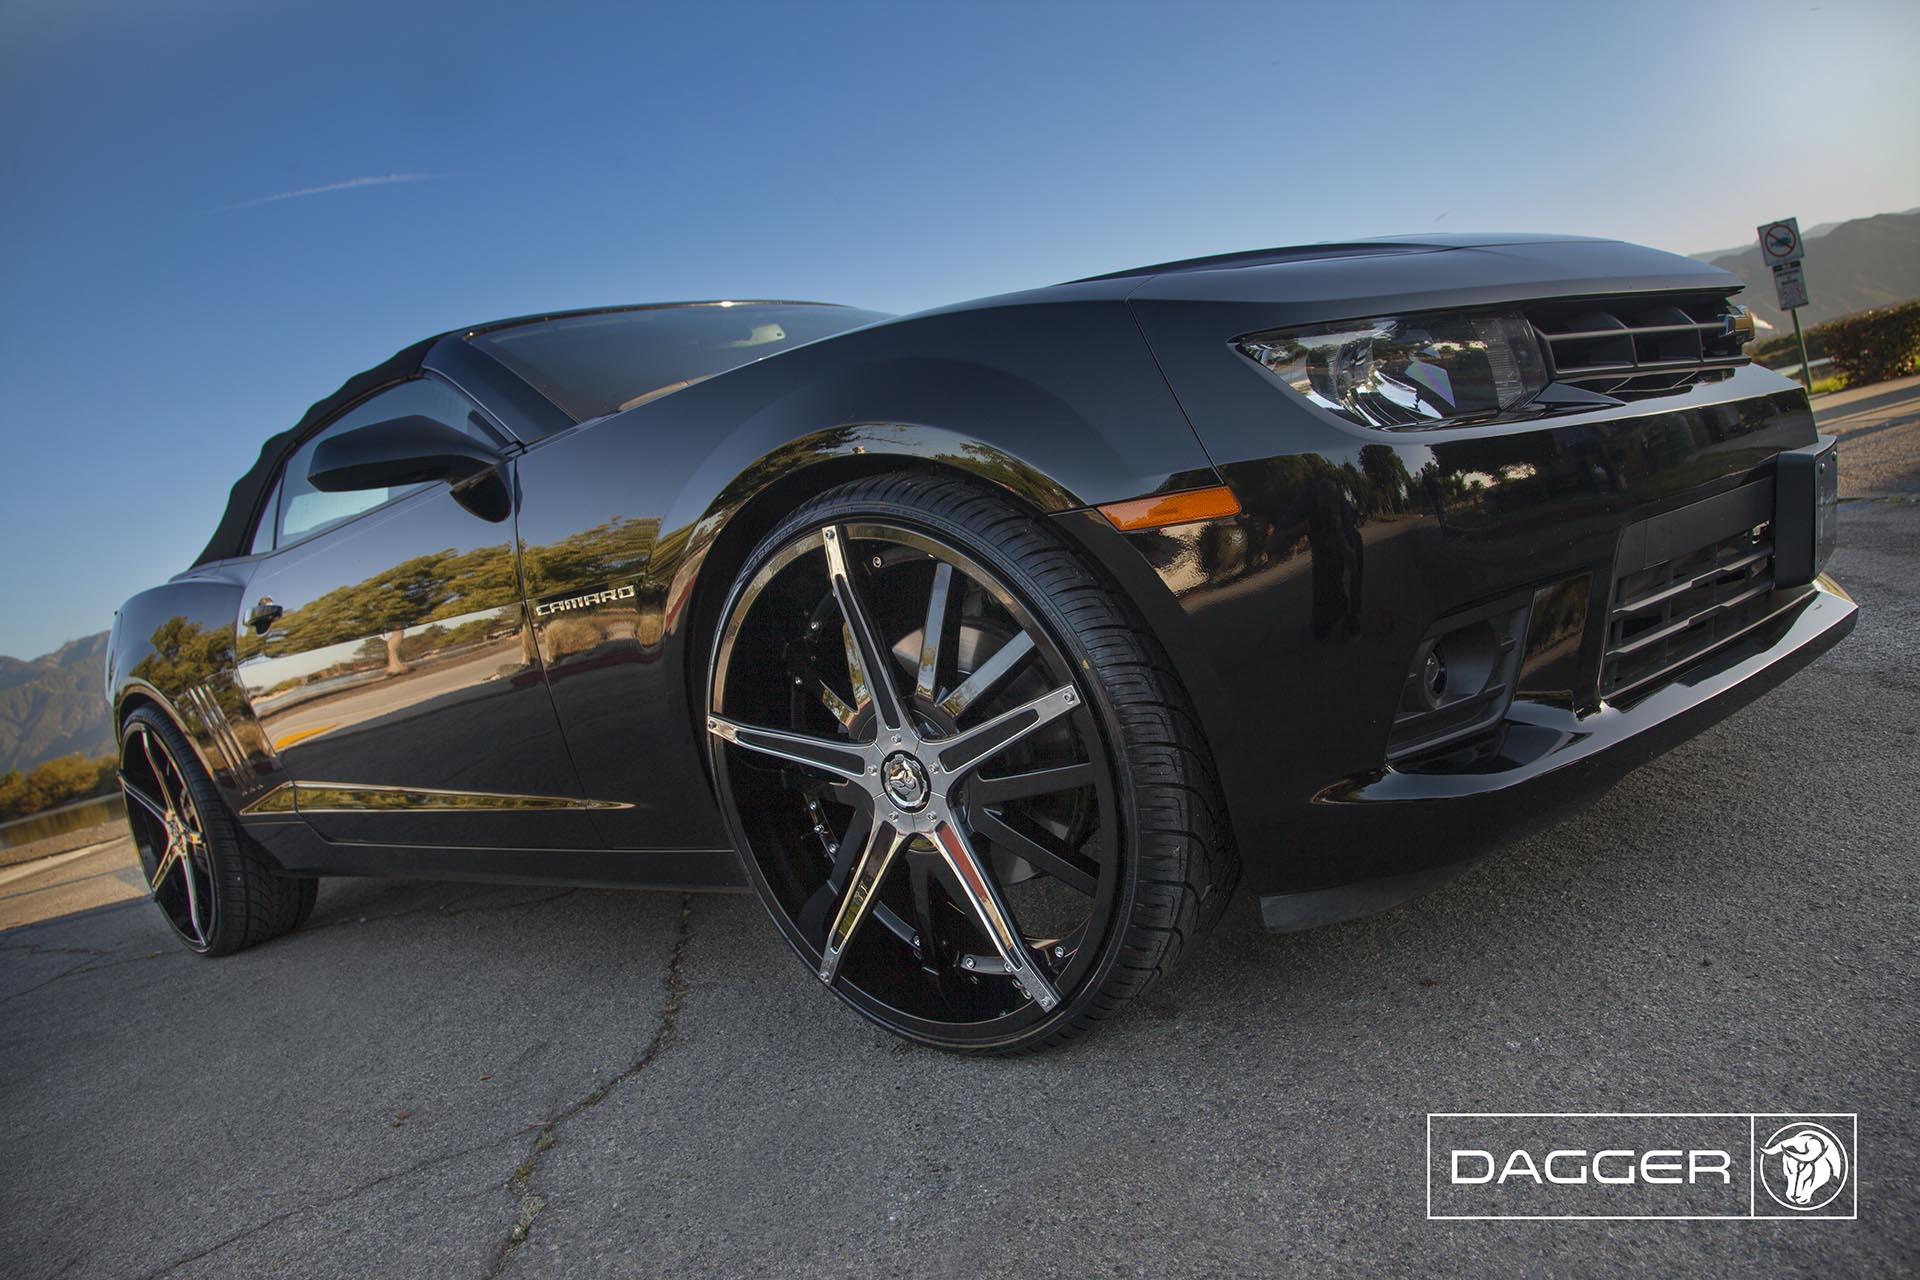 Black Diablo Dagger Wheels on a Chevy Camaro